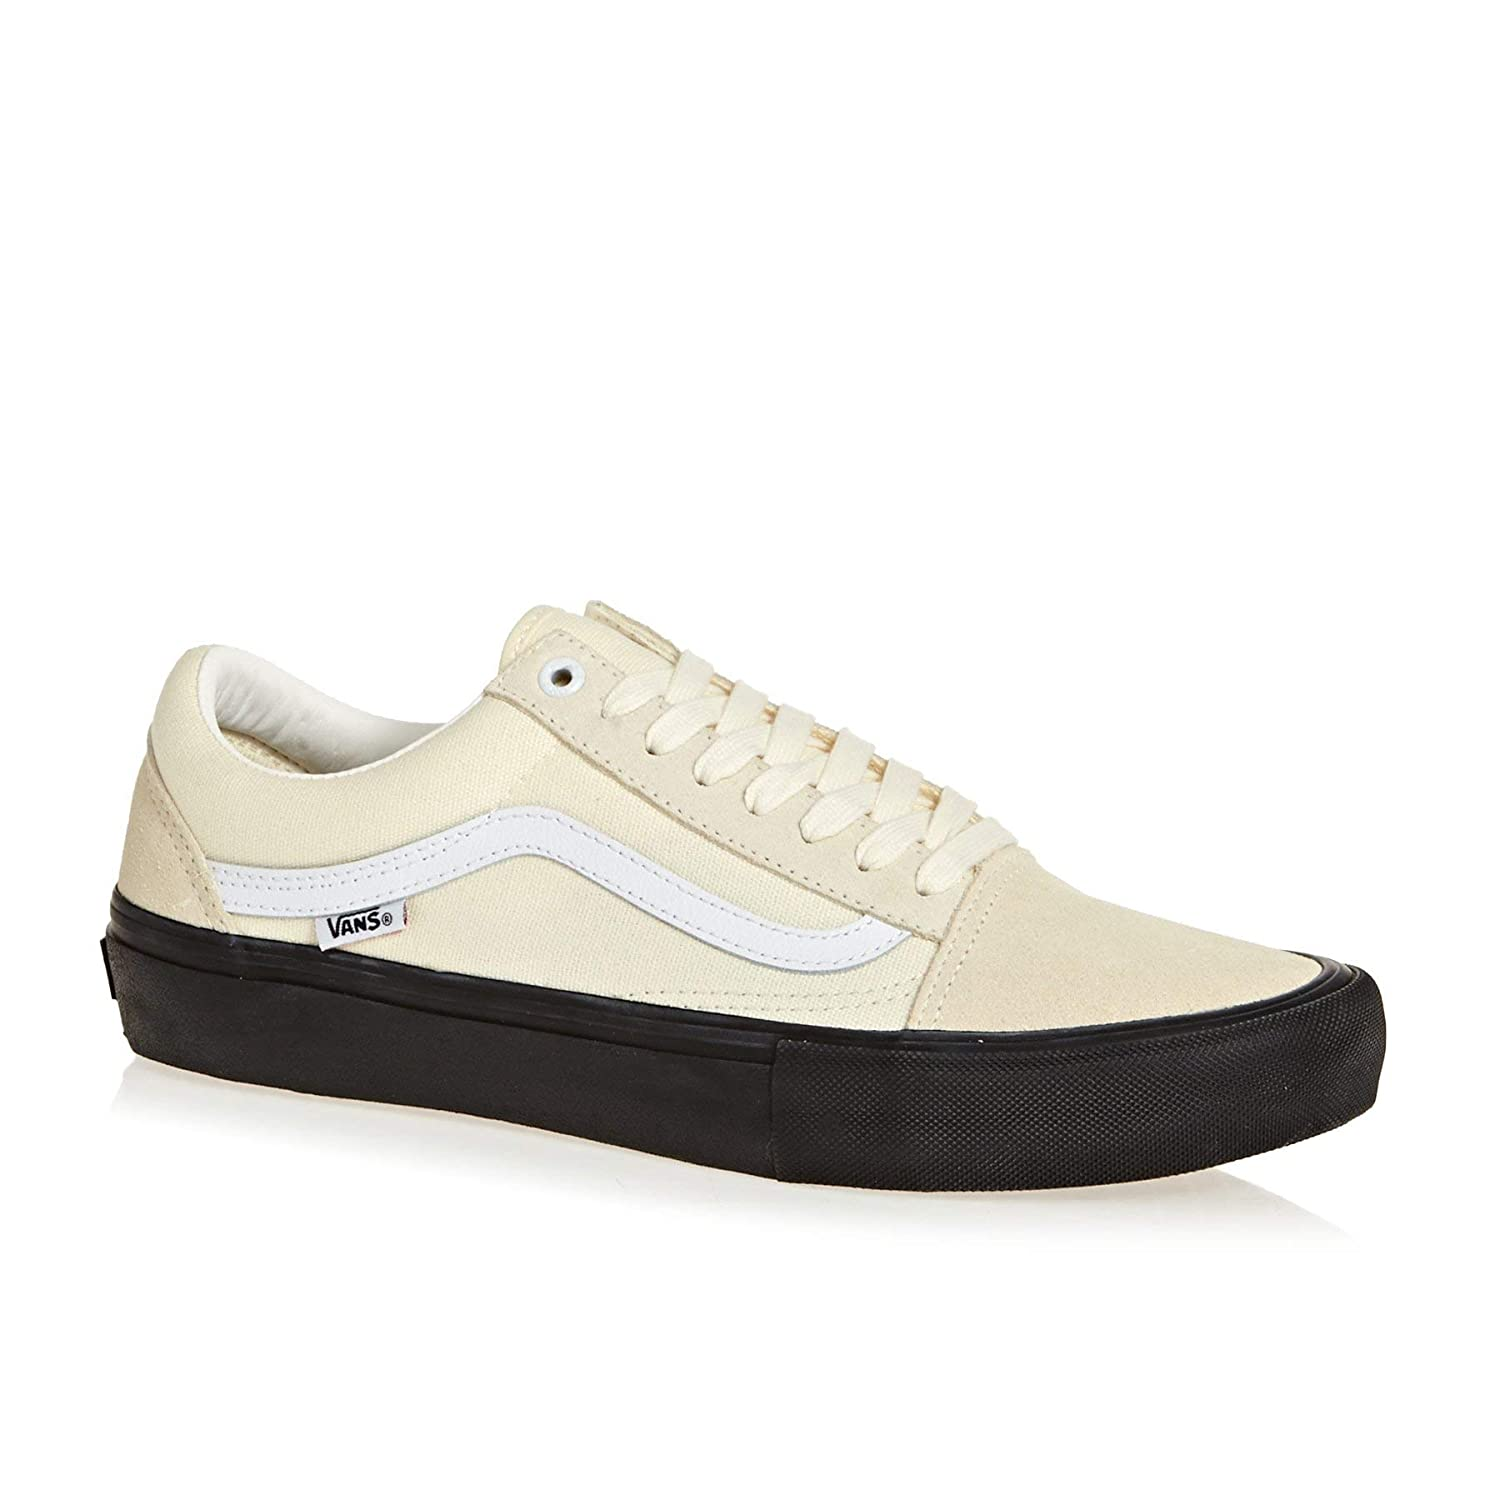 | Vans Old Skool Pro Classic WhiteBlack Sole